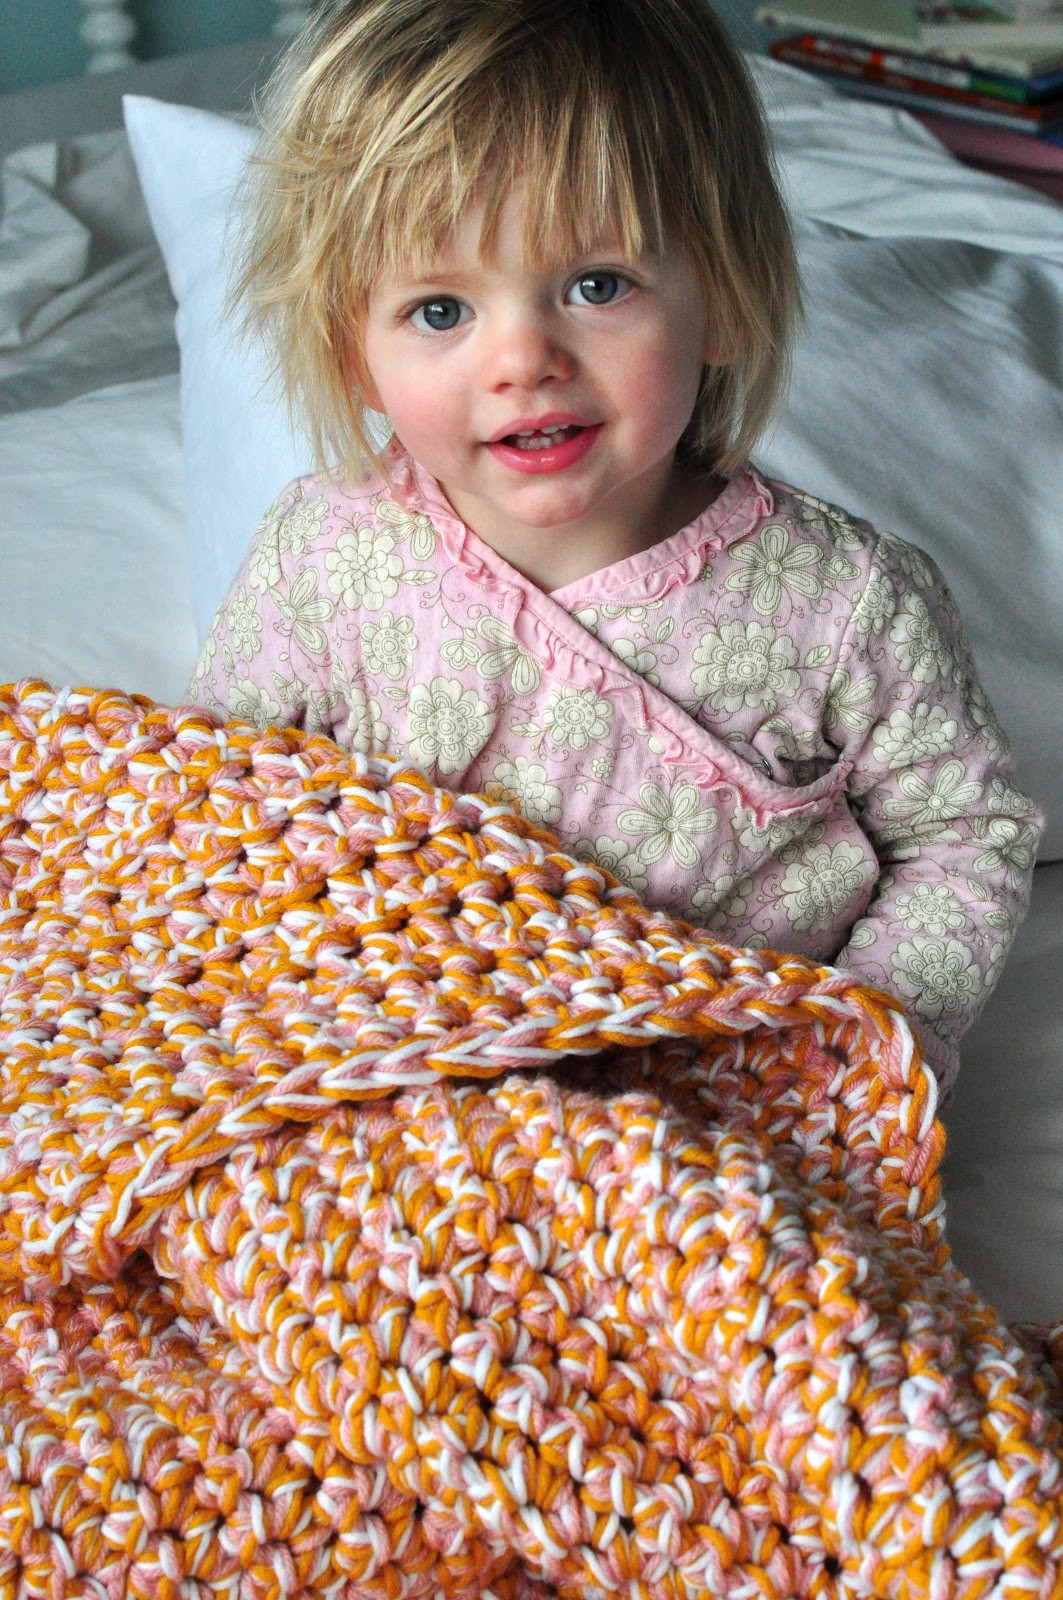 Easy Baby Afghan Crochet Patterns Fresh Aesthetic Nest Hoh In Crochet Easy Baby Afghan Tutorial Of Unique 42 Ideas Easy Baby Afghan Crochet Patterns